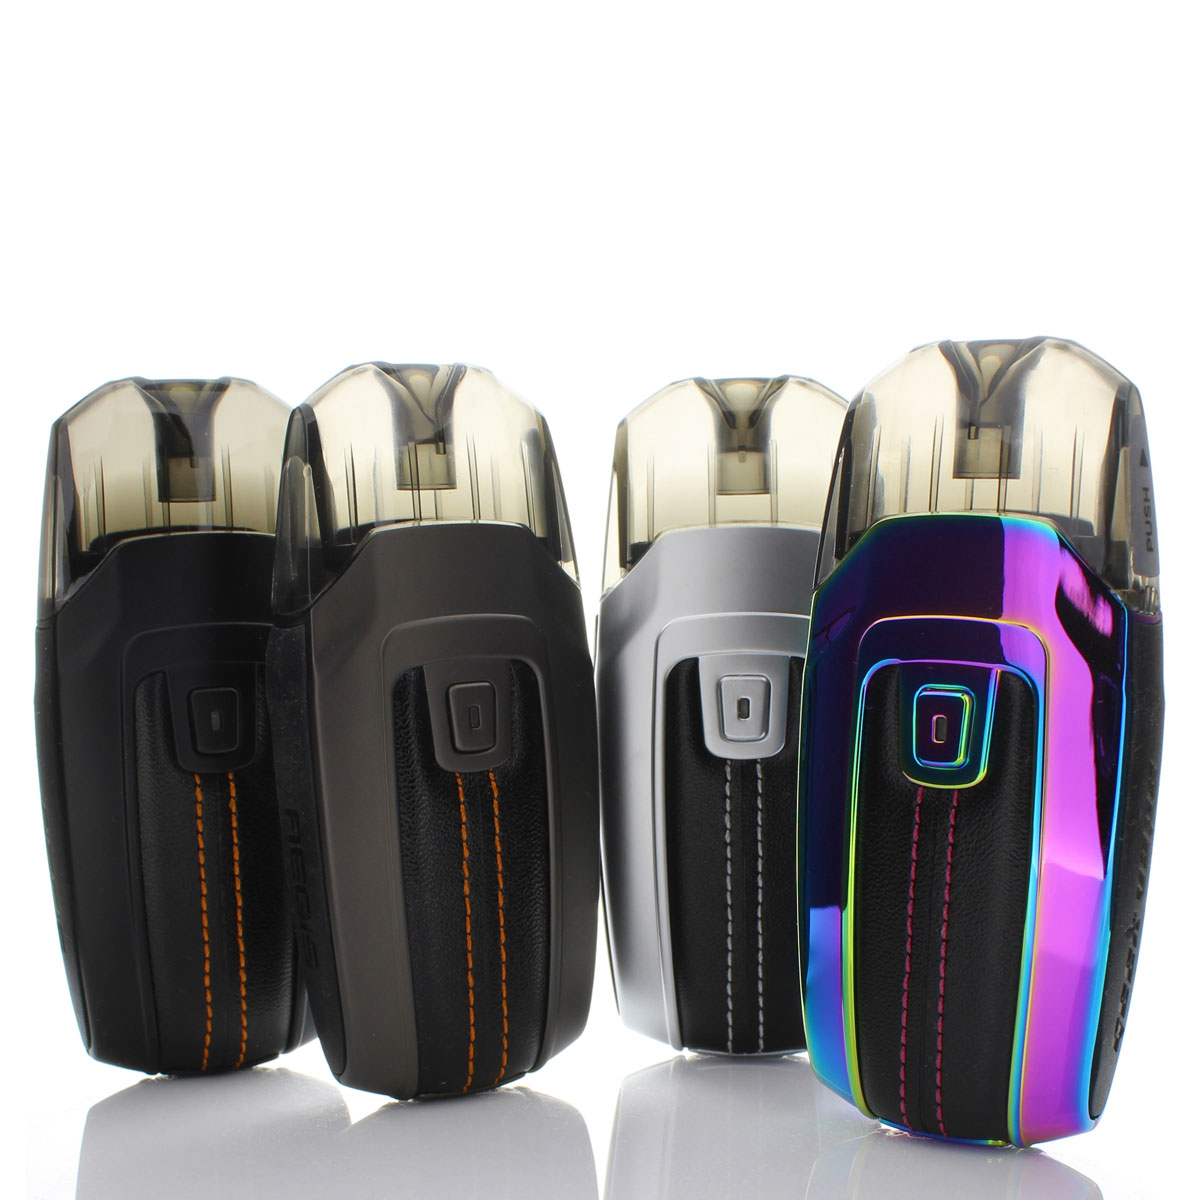 GeekVape Aegis Pod System 800mAh 3.5mL | The Best Vape